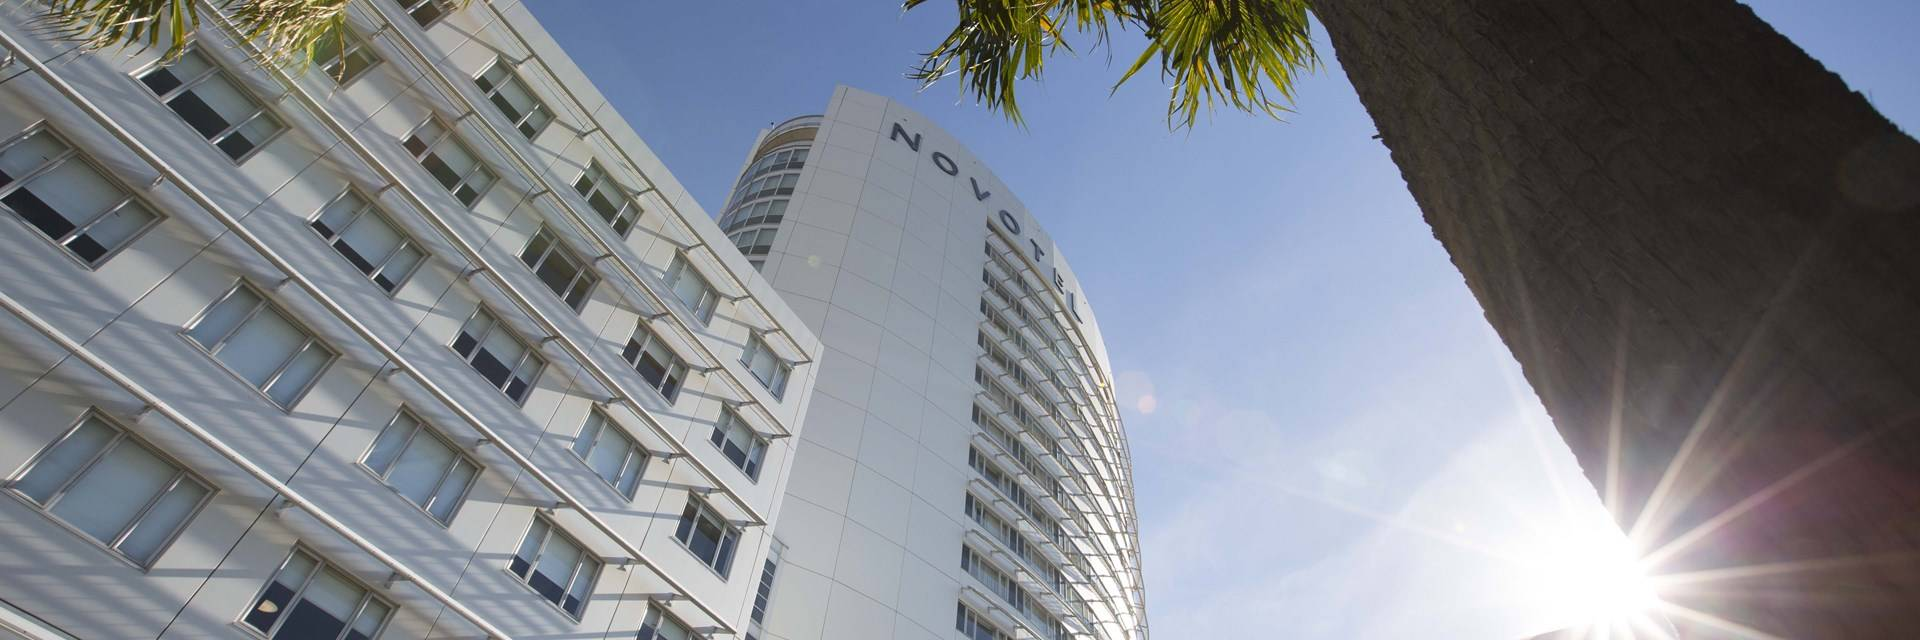 Sydney Olympic Park - external shot of the Novotel